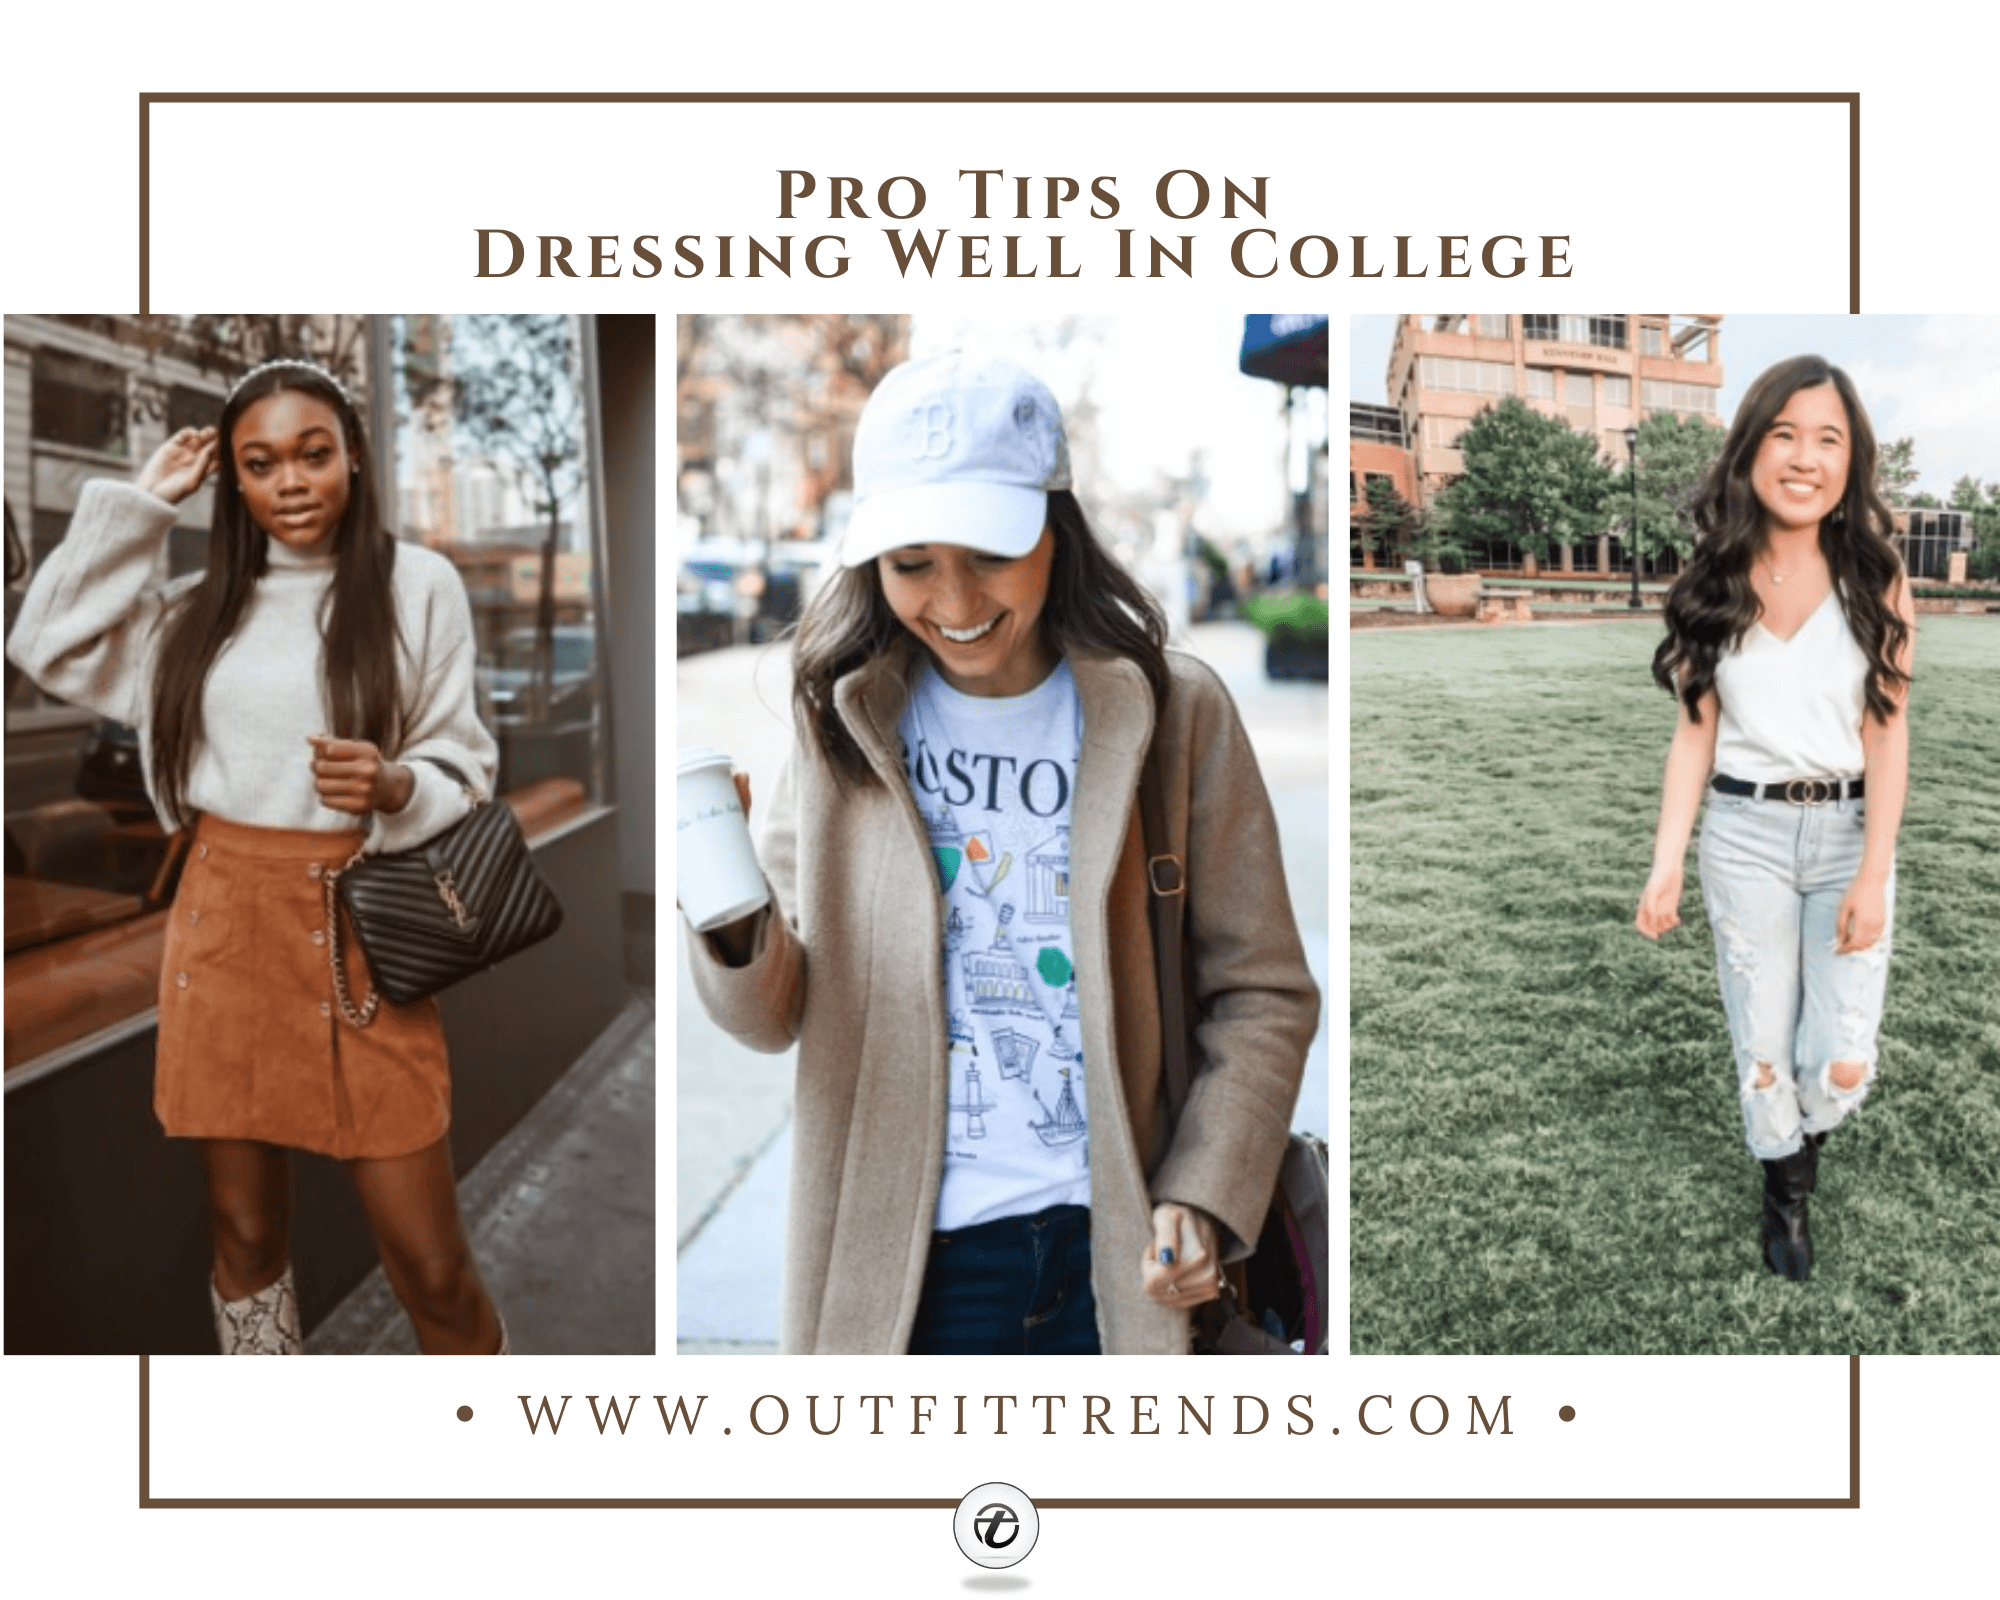 College Girls Dressing 16 Tips to Dress Well in College